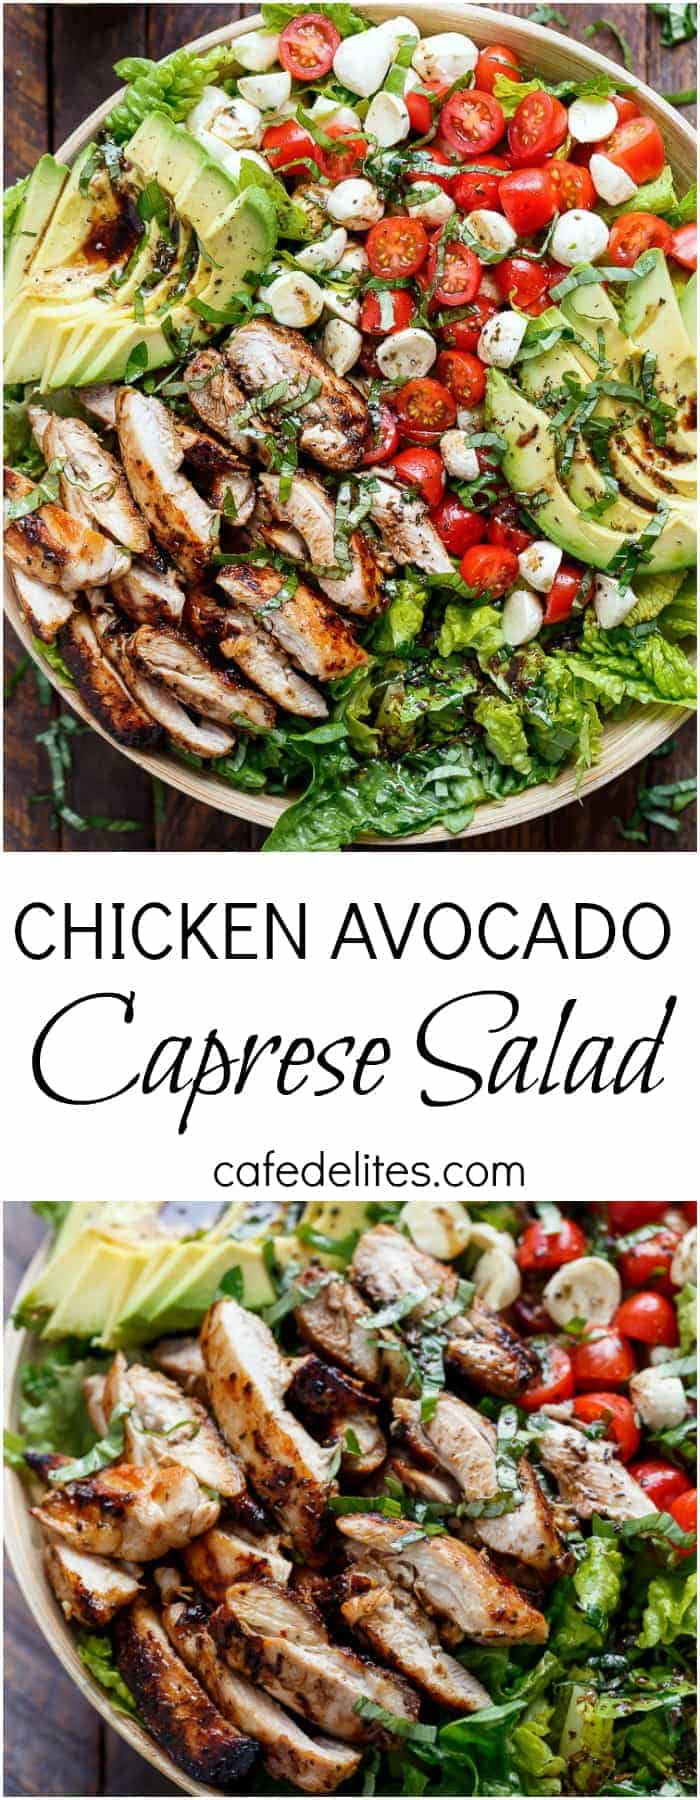 Balsamic Chicken Avocado Caprese Salad is a quick and easy meal in a salad drizzled with a balsamic dressing that doubles as a marinade! | https://cafedelites.com